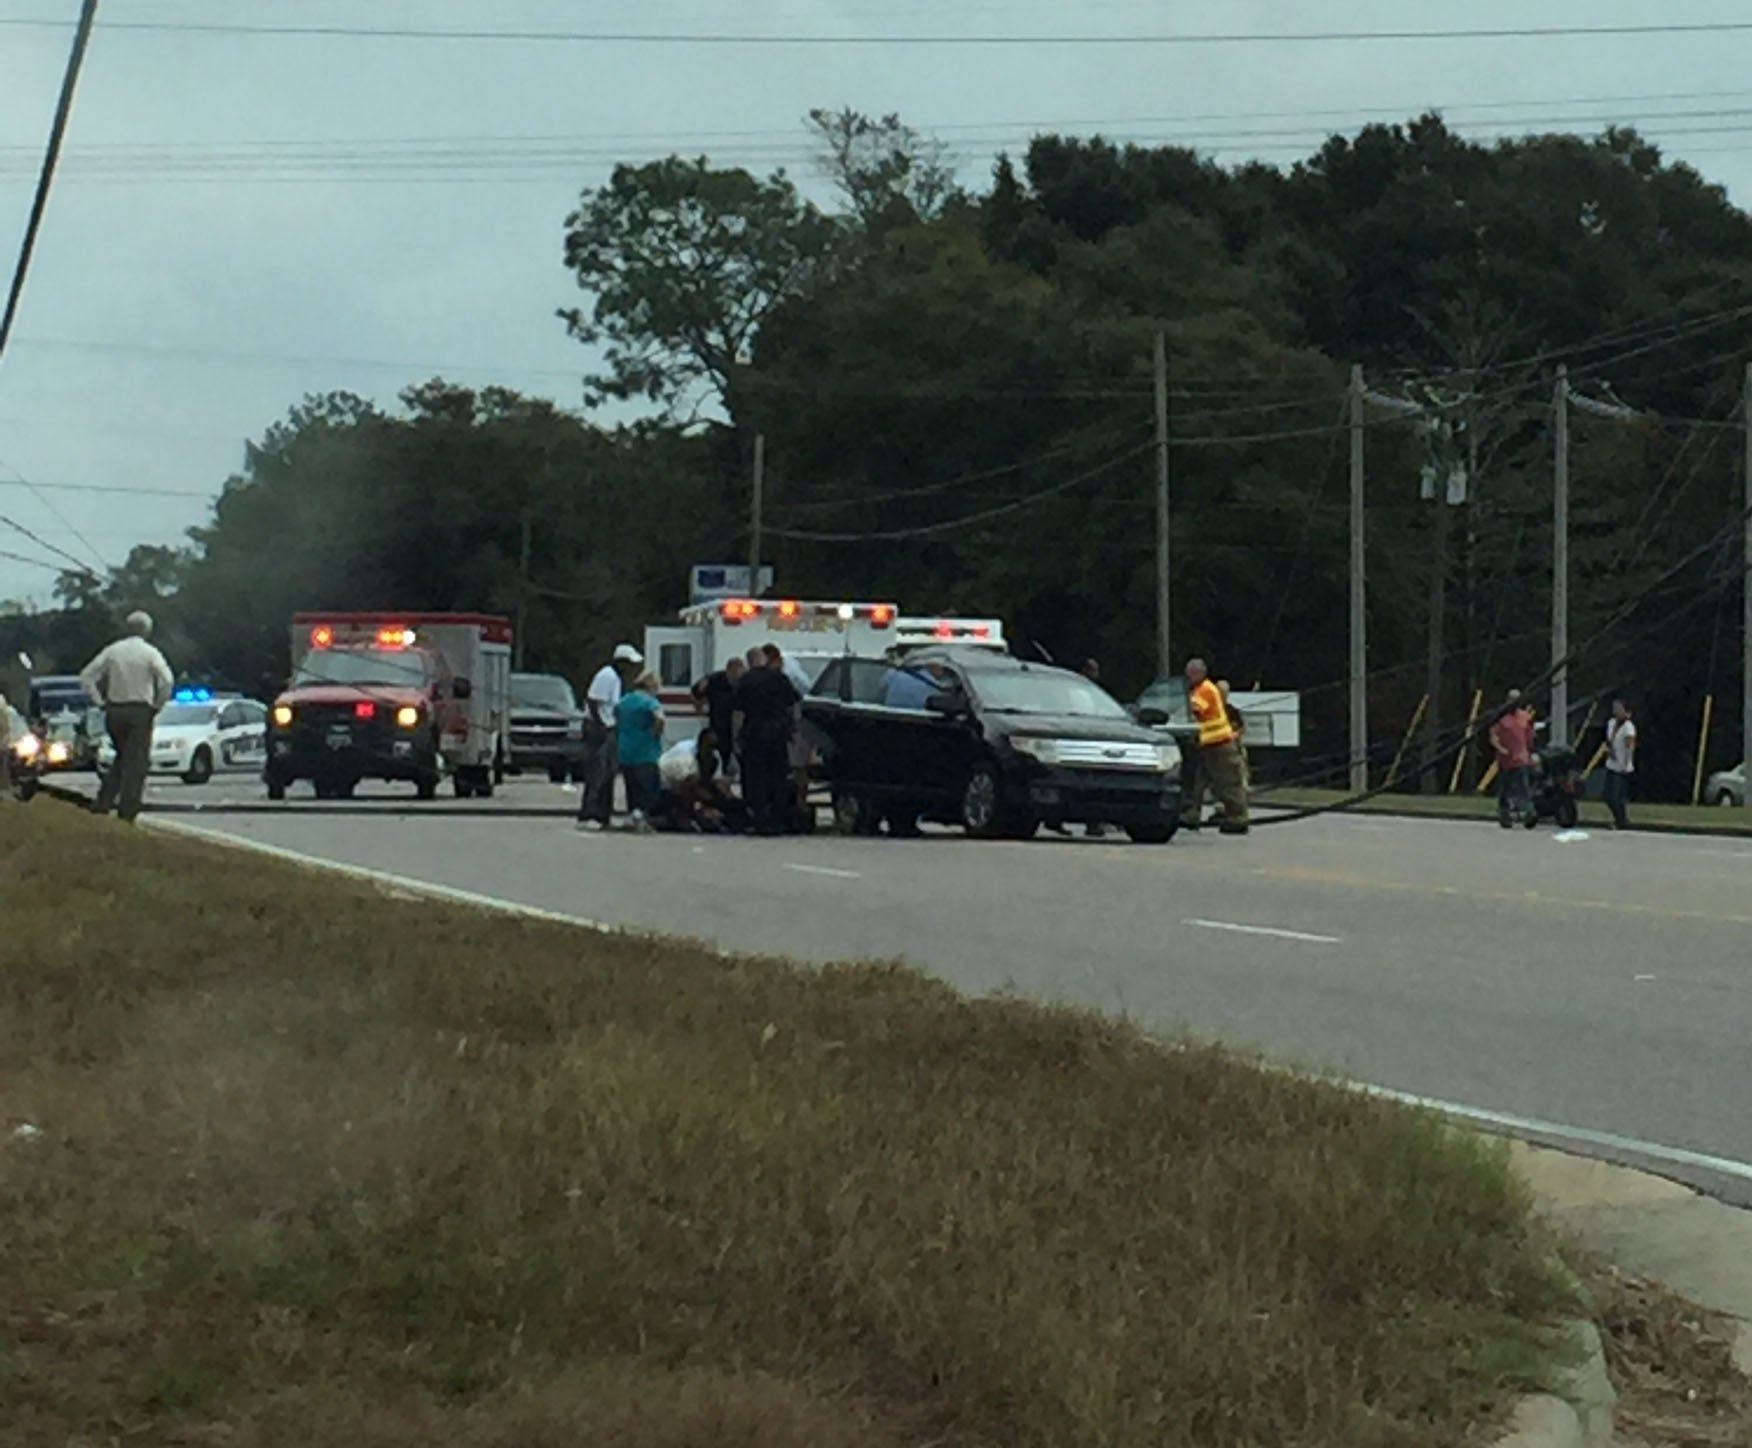 Alabama mobile county semmes - Fox10 News Viewer Shay Moulds Provides This Photo Of The Wreck On U S 98 That Claimed